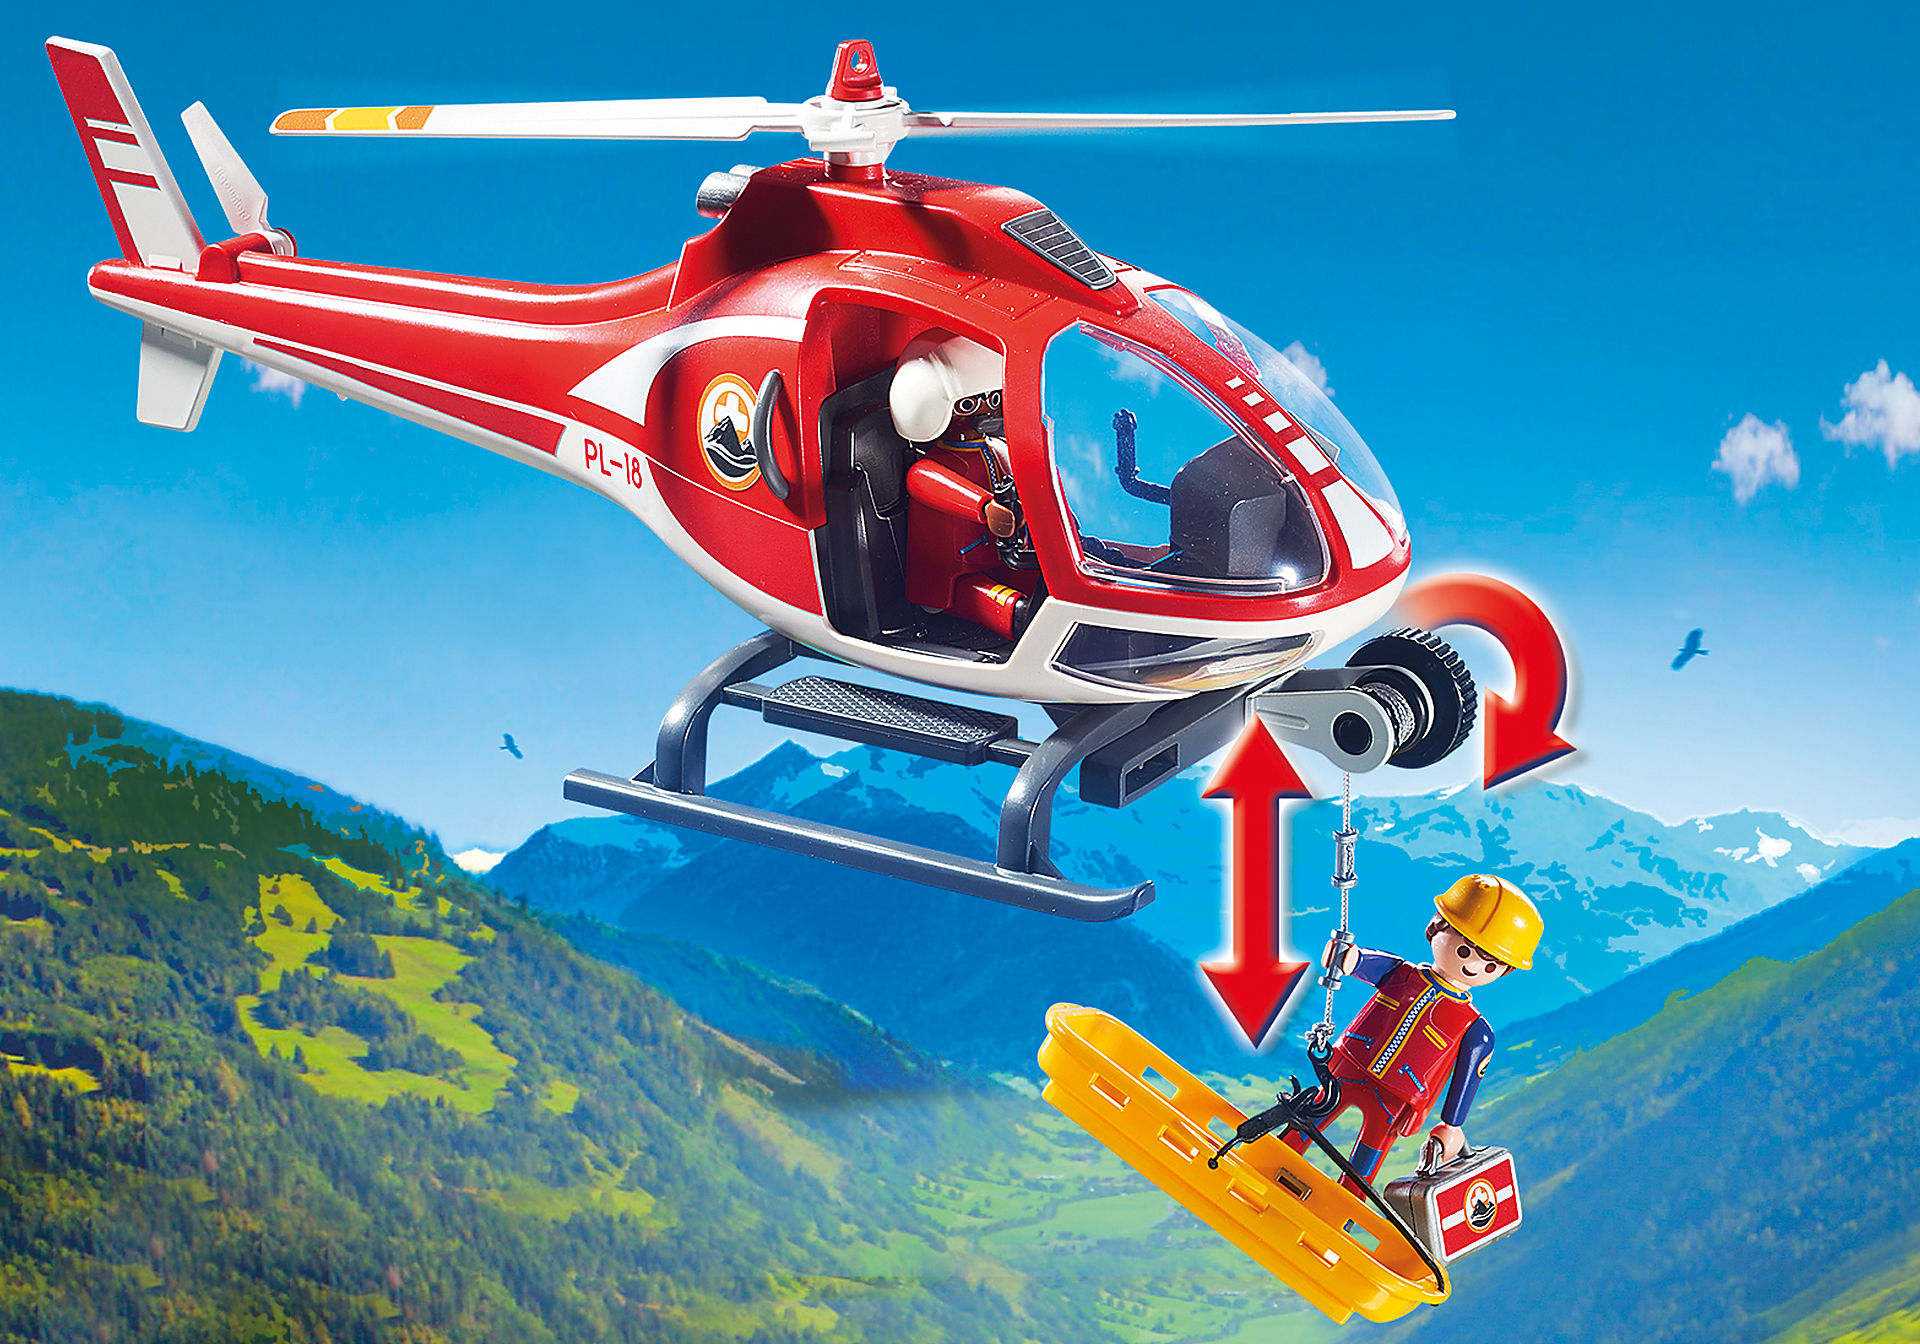 http://media.playmobil.com/i/playmobil/9127_product_extra1/Reddingswerkers met helikopter